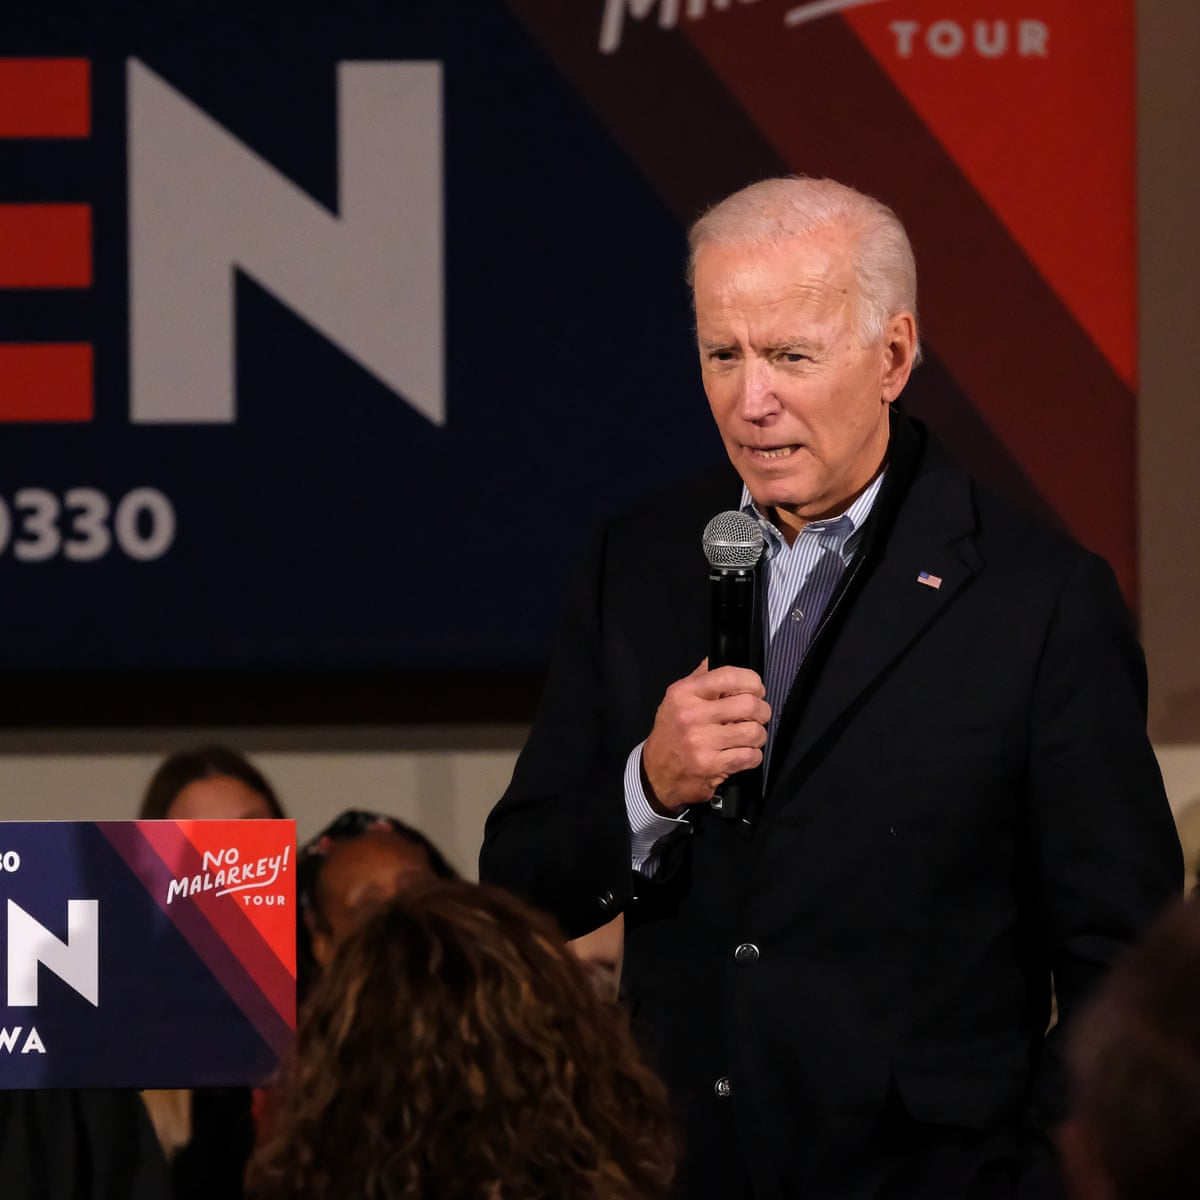 Stop Saying Biden Is The Most Electable Trump Will Run Rings Round Him Joe Biden The Guardian